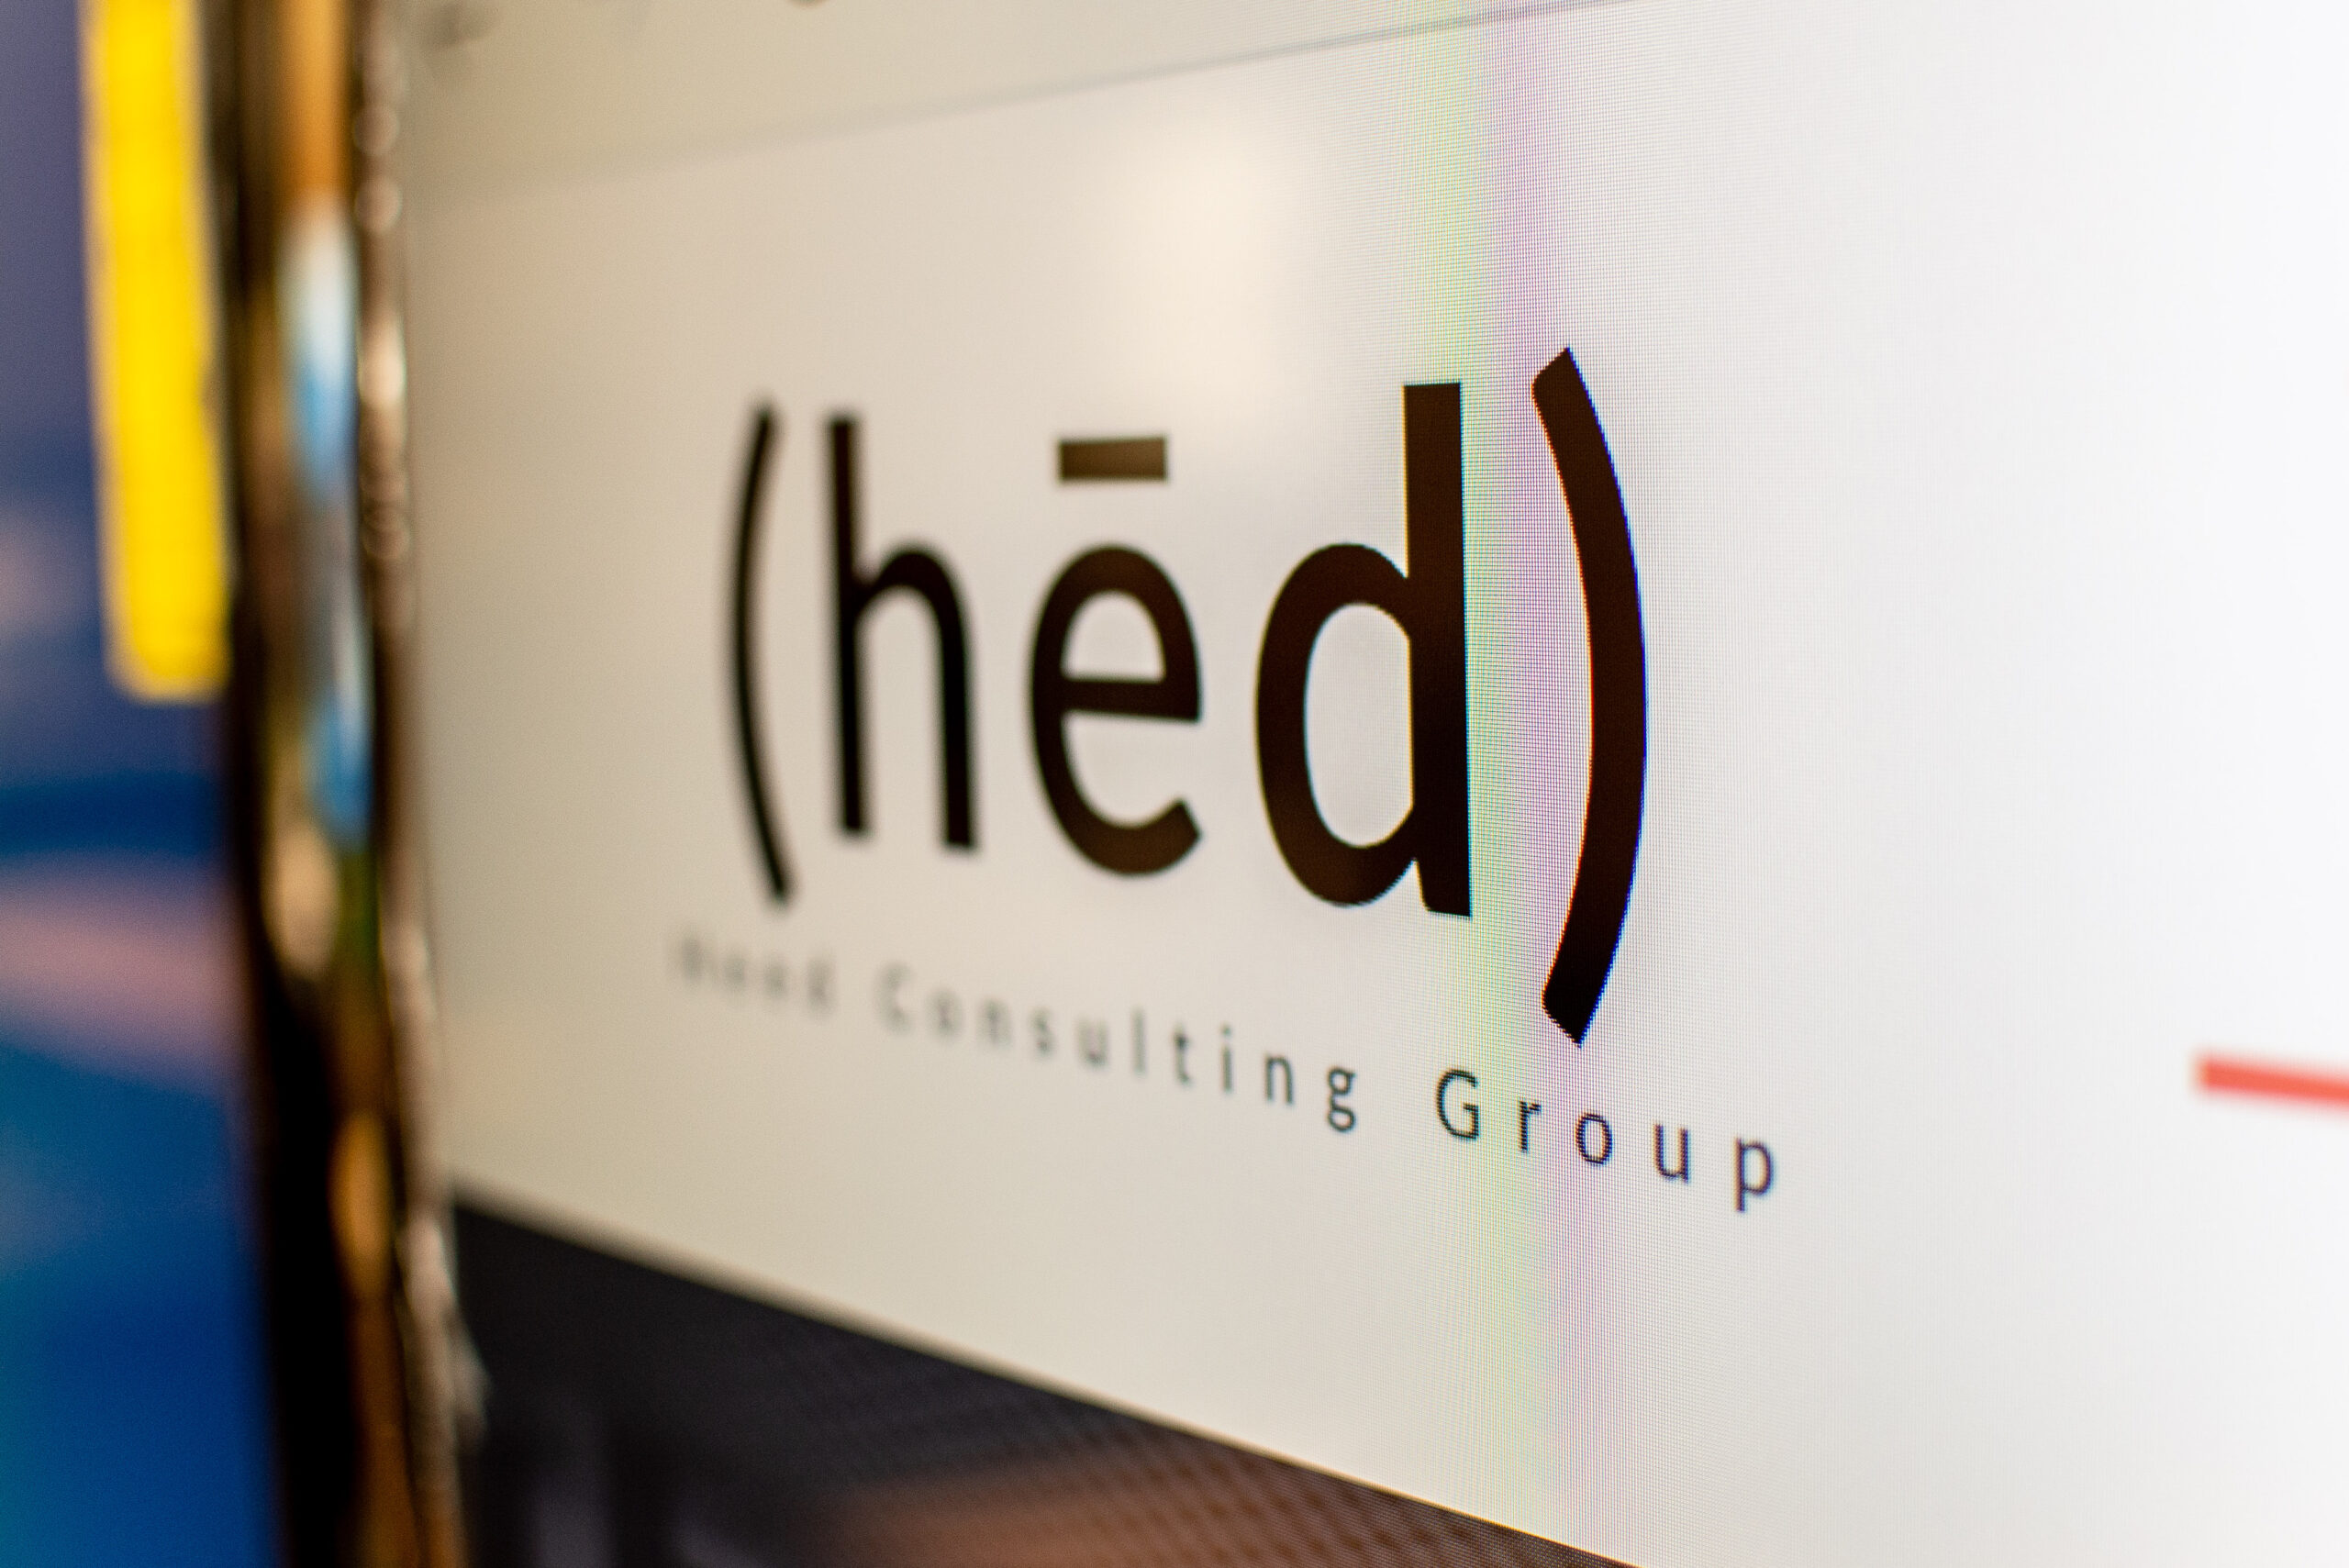 St Mel's K, a Catholic academy of the LA Archdioceses for Kindergarten students has partnered with Heed Consulting Group to head up Cyber Risk Management and IT Support